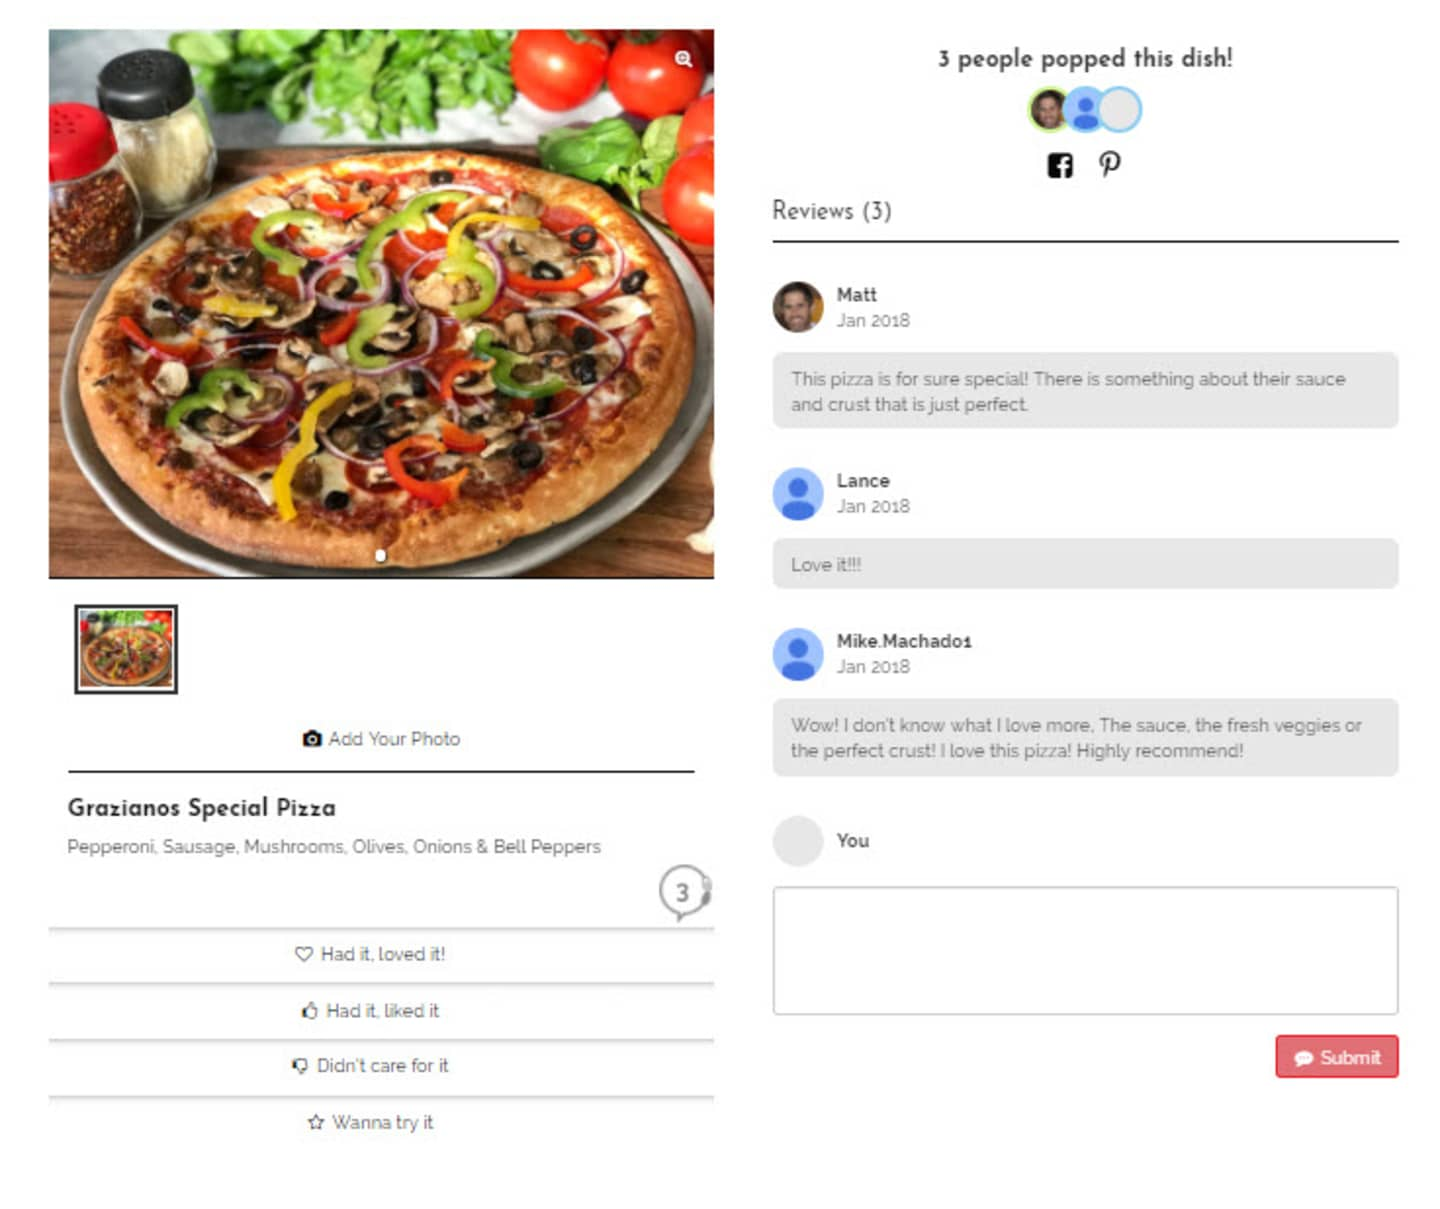 FREE $5 COUPON BY TRYING OUR NEW INTERACTIVE MENUS!  SIMPLY LEAVE A REVIEW!